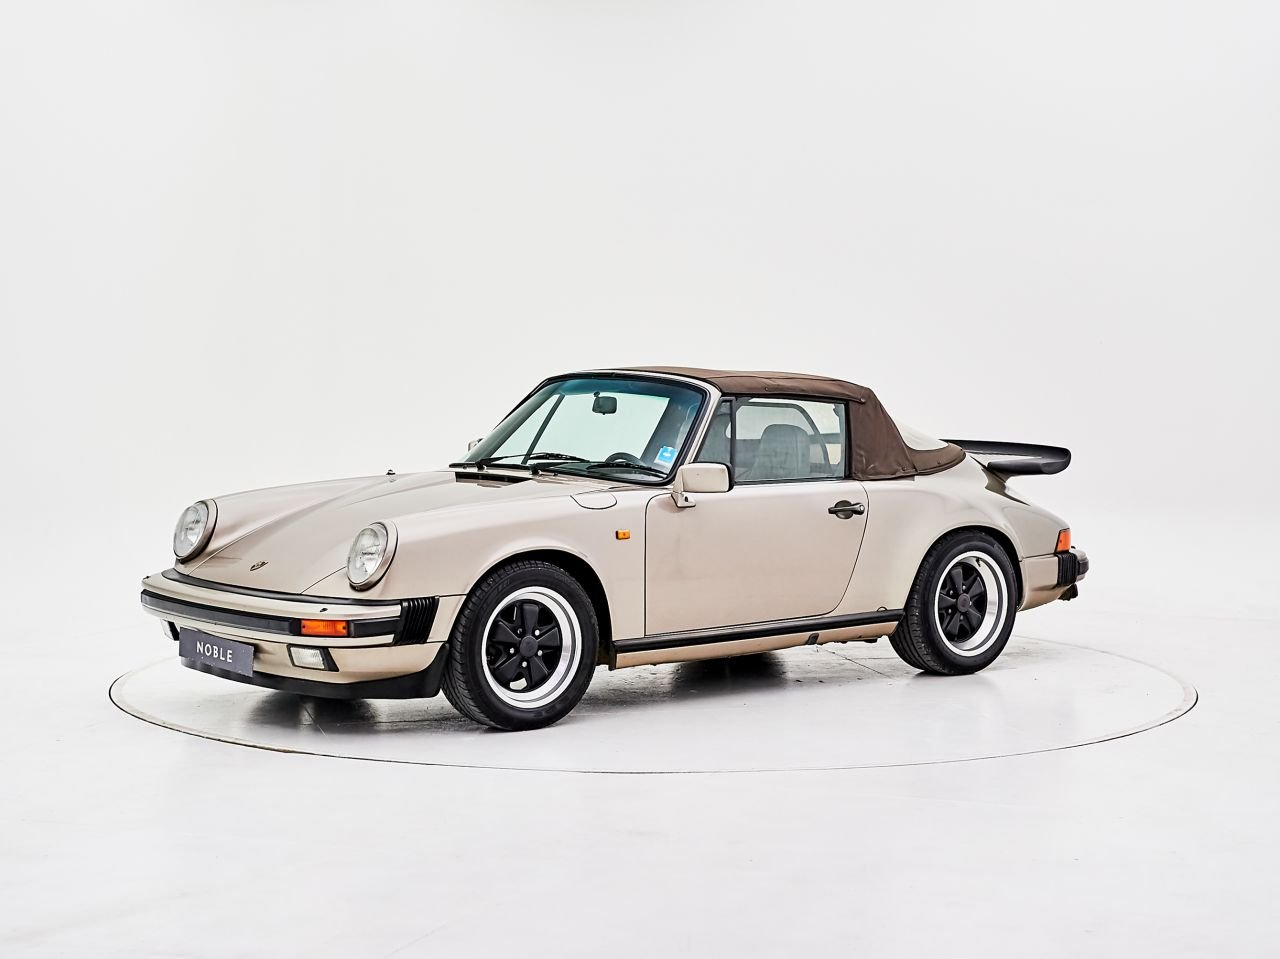 1984 PORSCHE 911 3.2 CARRERA CABRIOLET For Sale by Auction (picture 6 of 6)